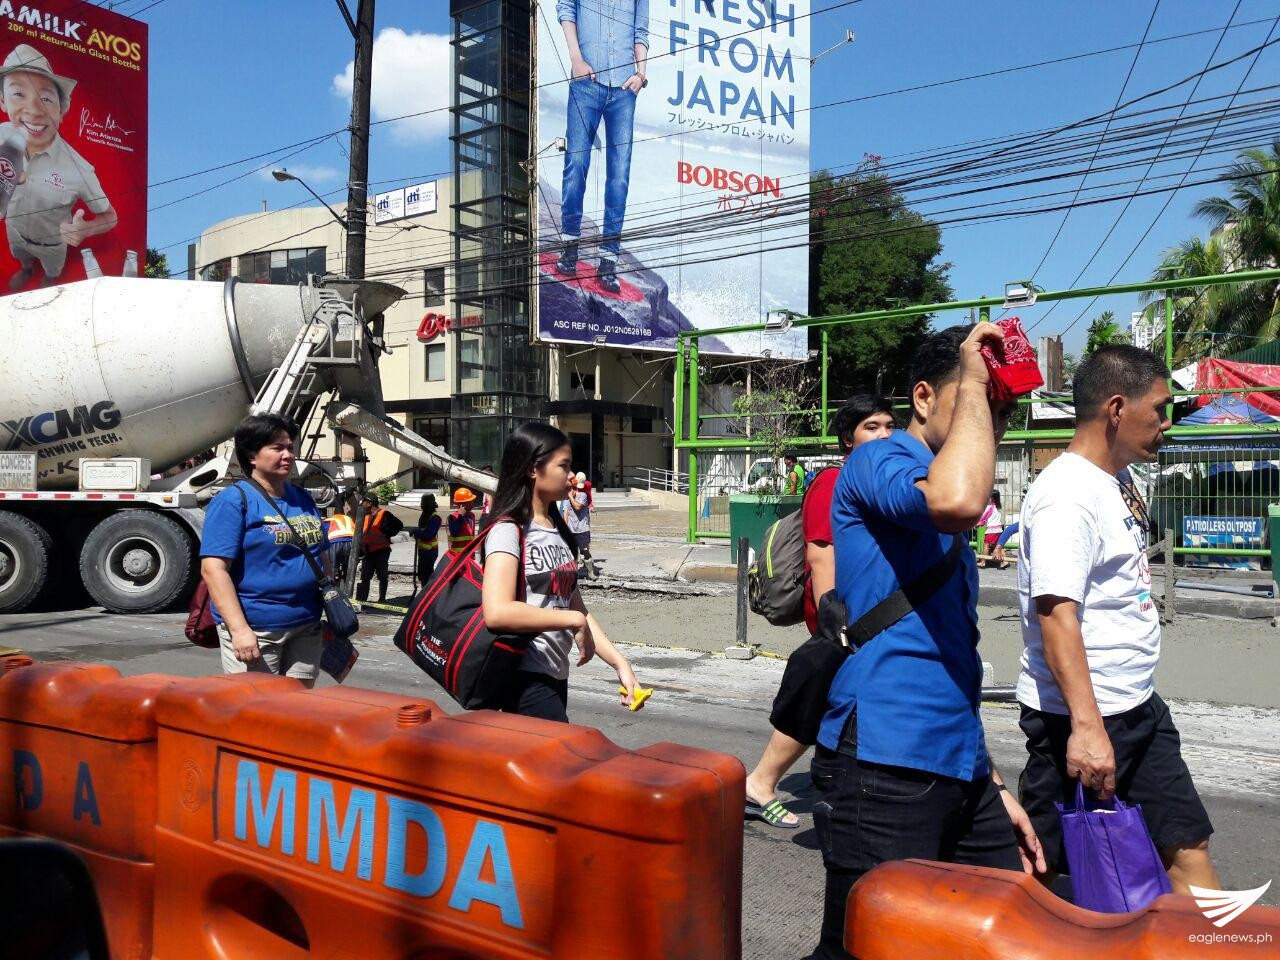 Due to the road closure, commuters were forced to walk from Edsa Crossing (Shaw) to Megamall where they could hail public utility vehicles. Erwin Temperante, Eagle News Service